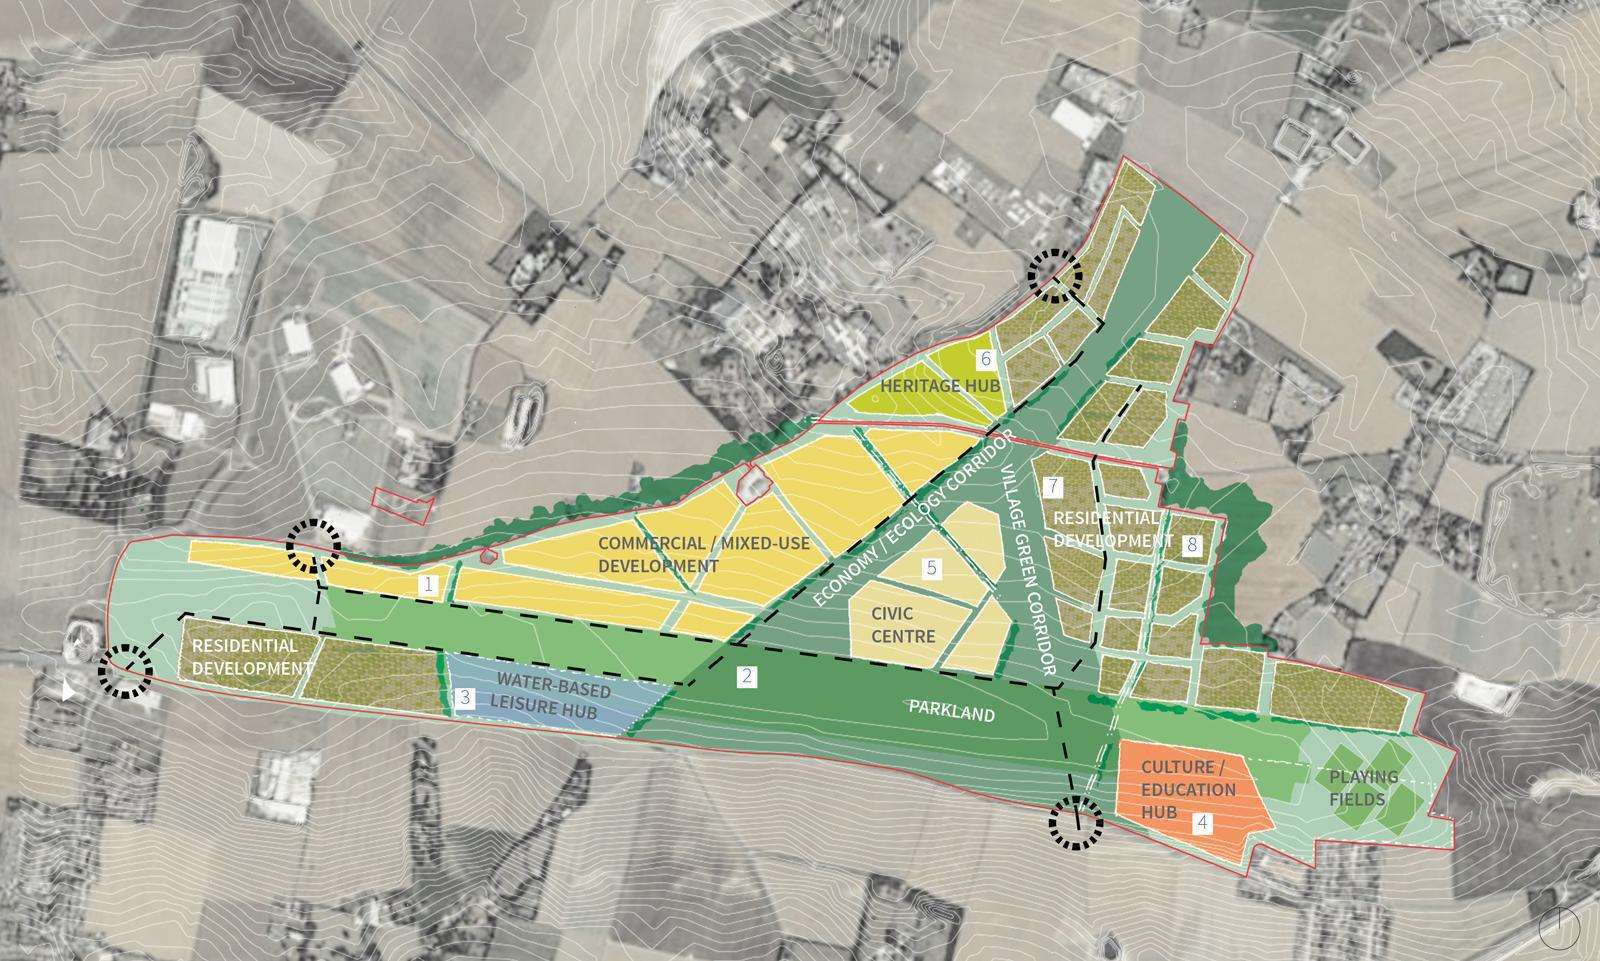 One of the concepts for the former Manston airport site